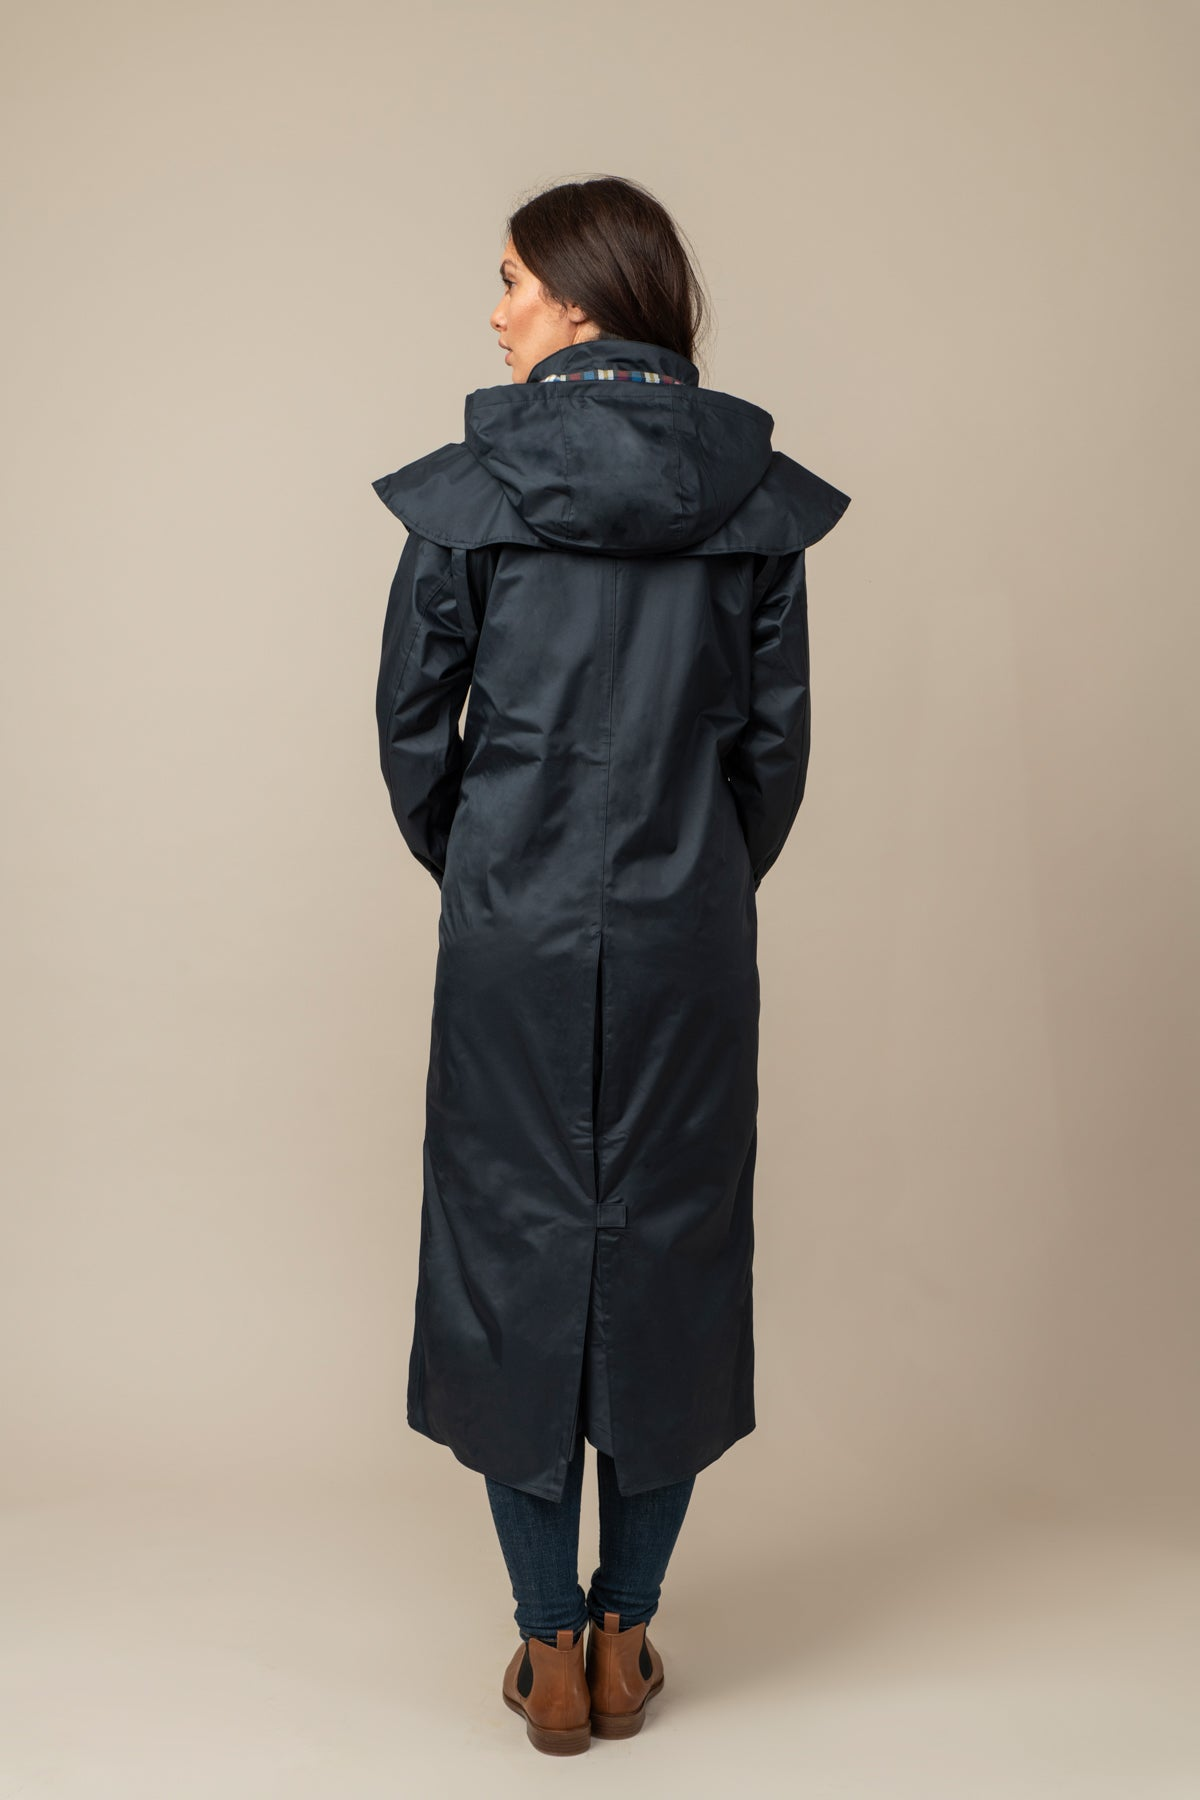 Outback Full Length Waterproof Raincoat - Nightshade